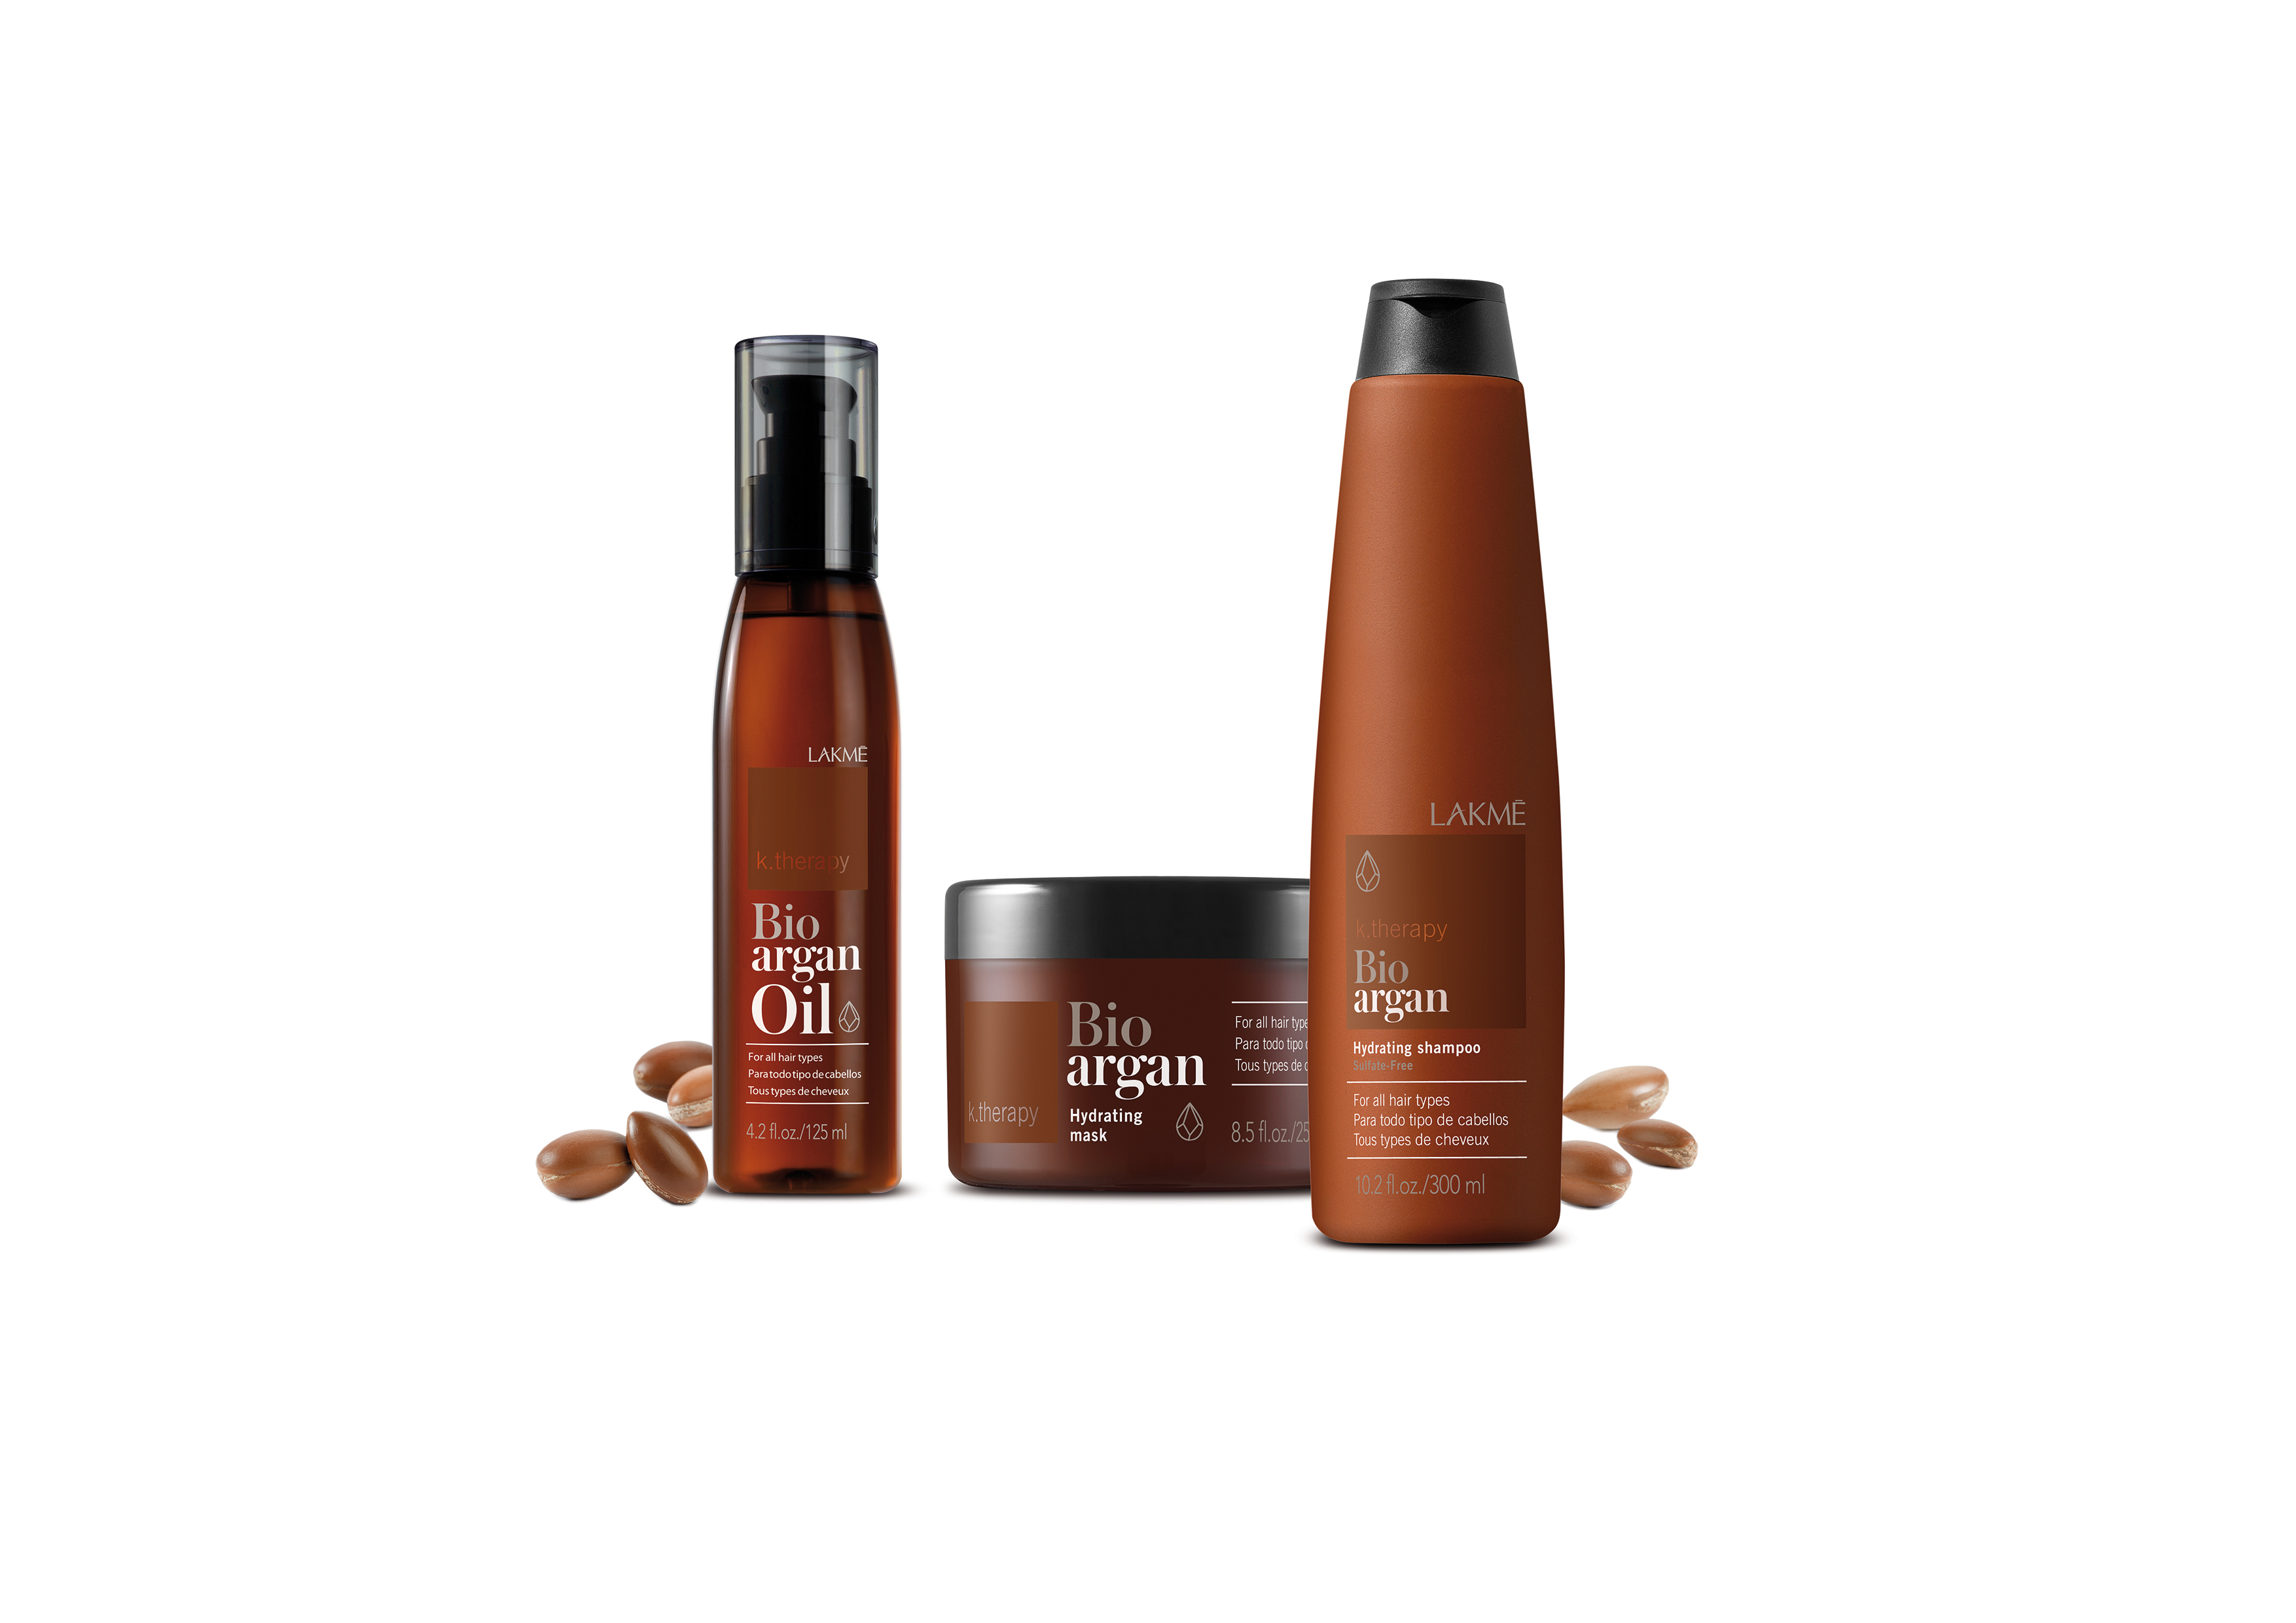 The Bio Argan Collection by Lakme